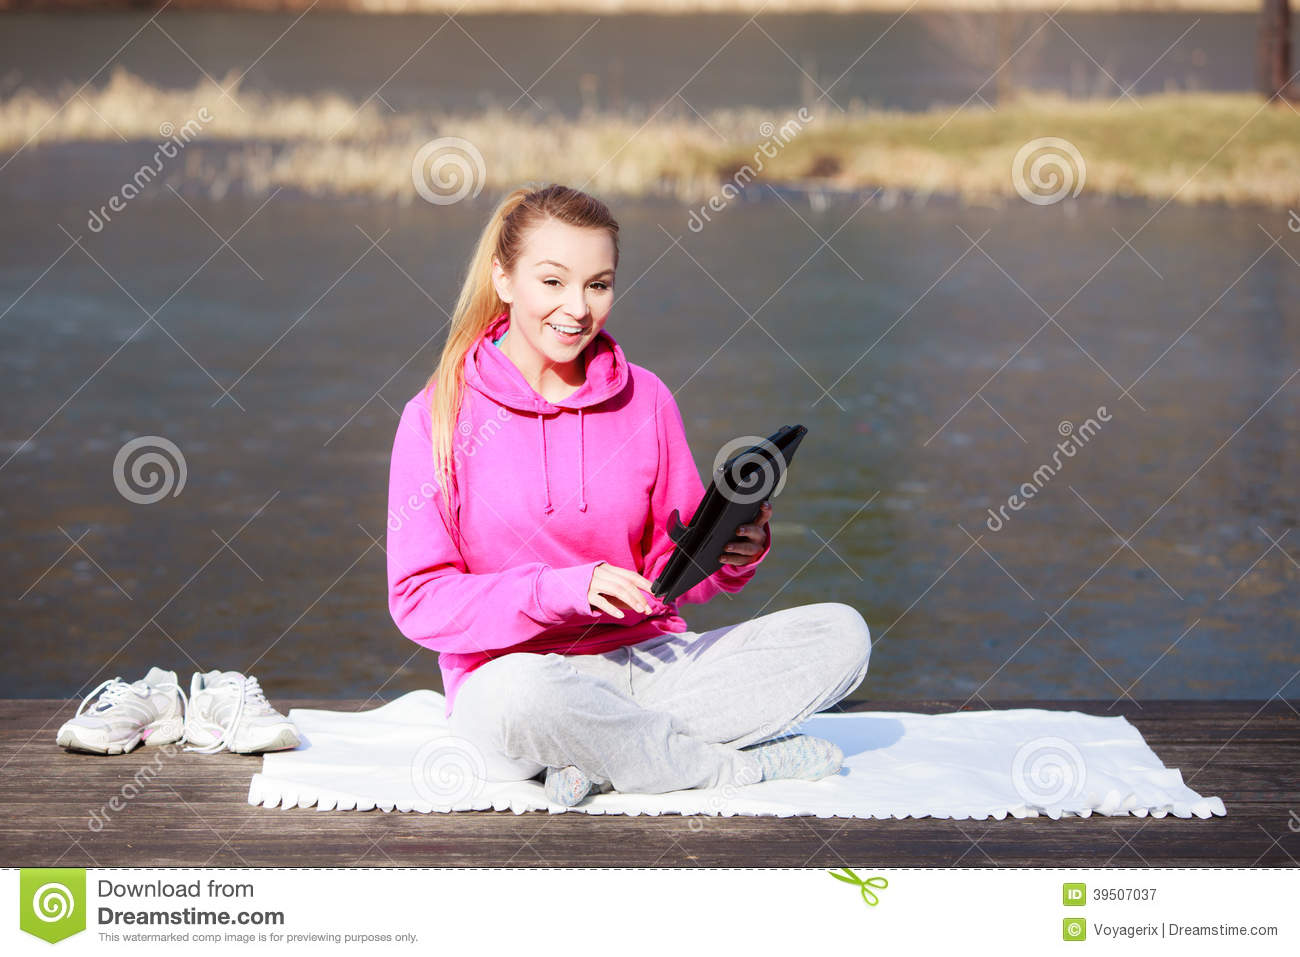 Woman teenage girl in tracksuit using tablet on pier outdoor